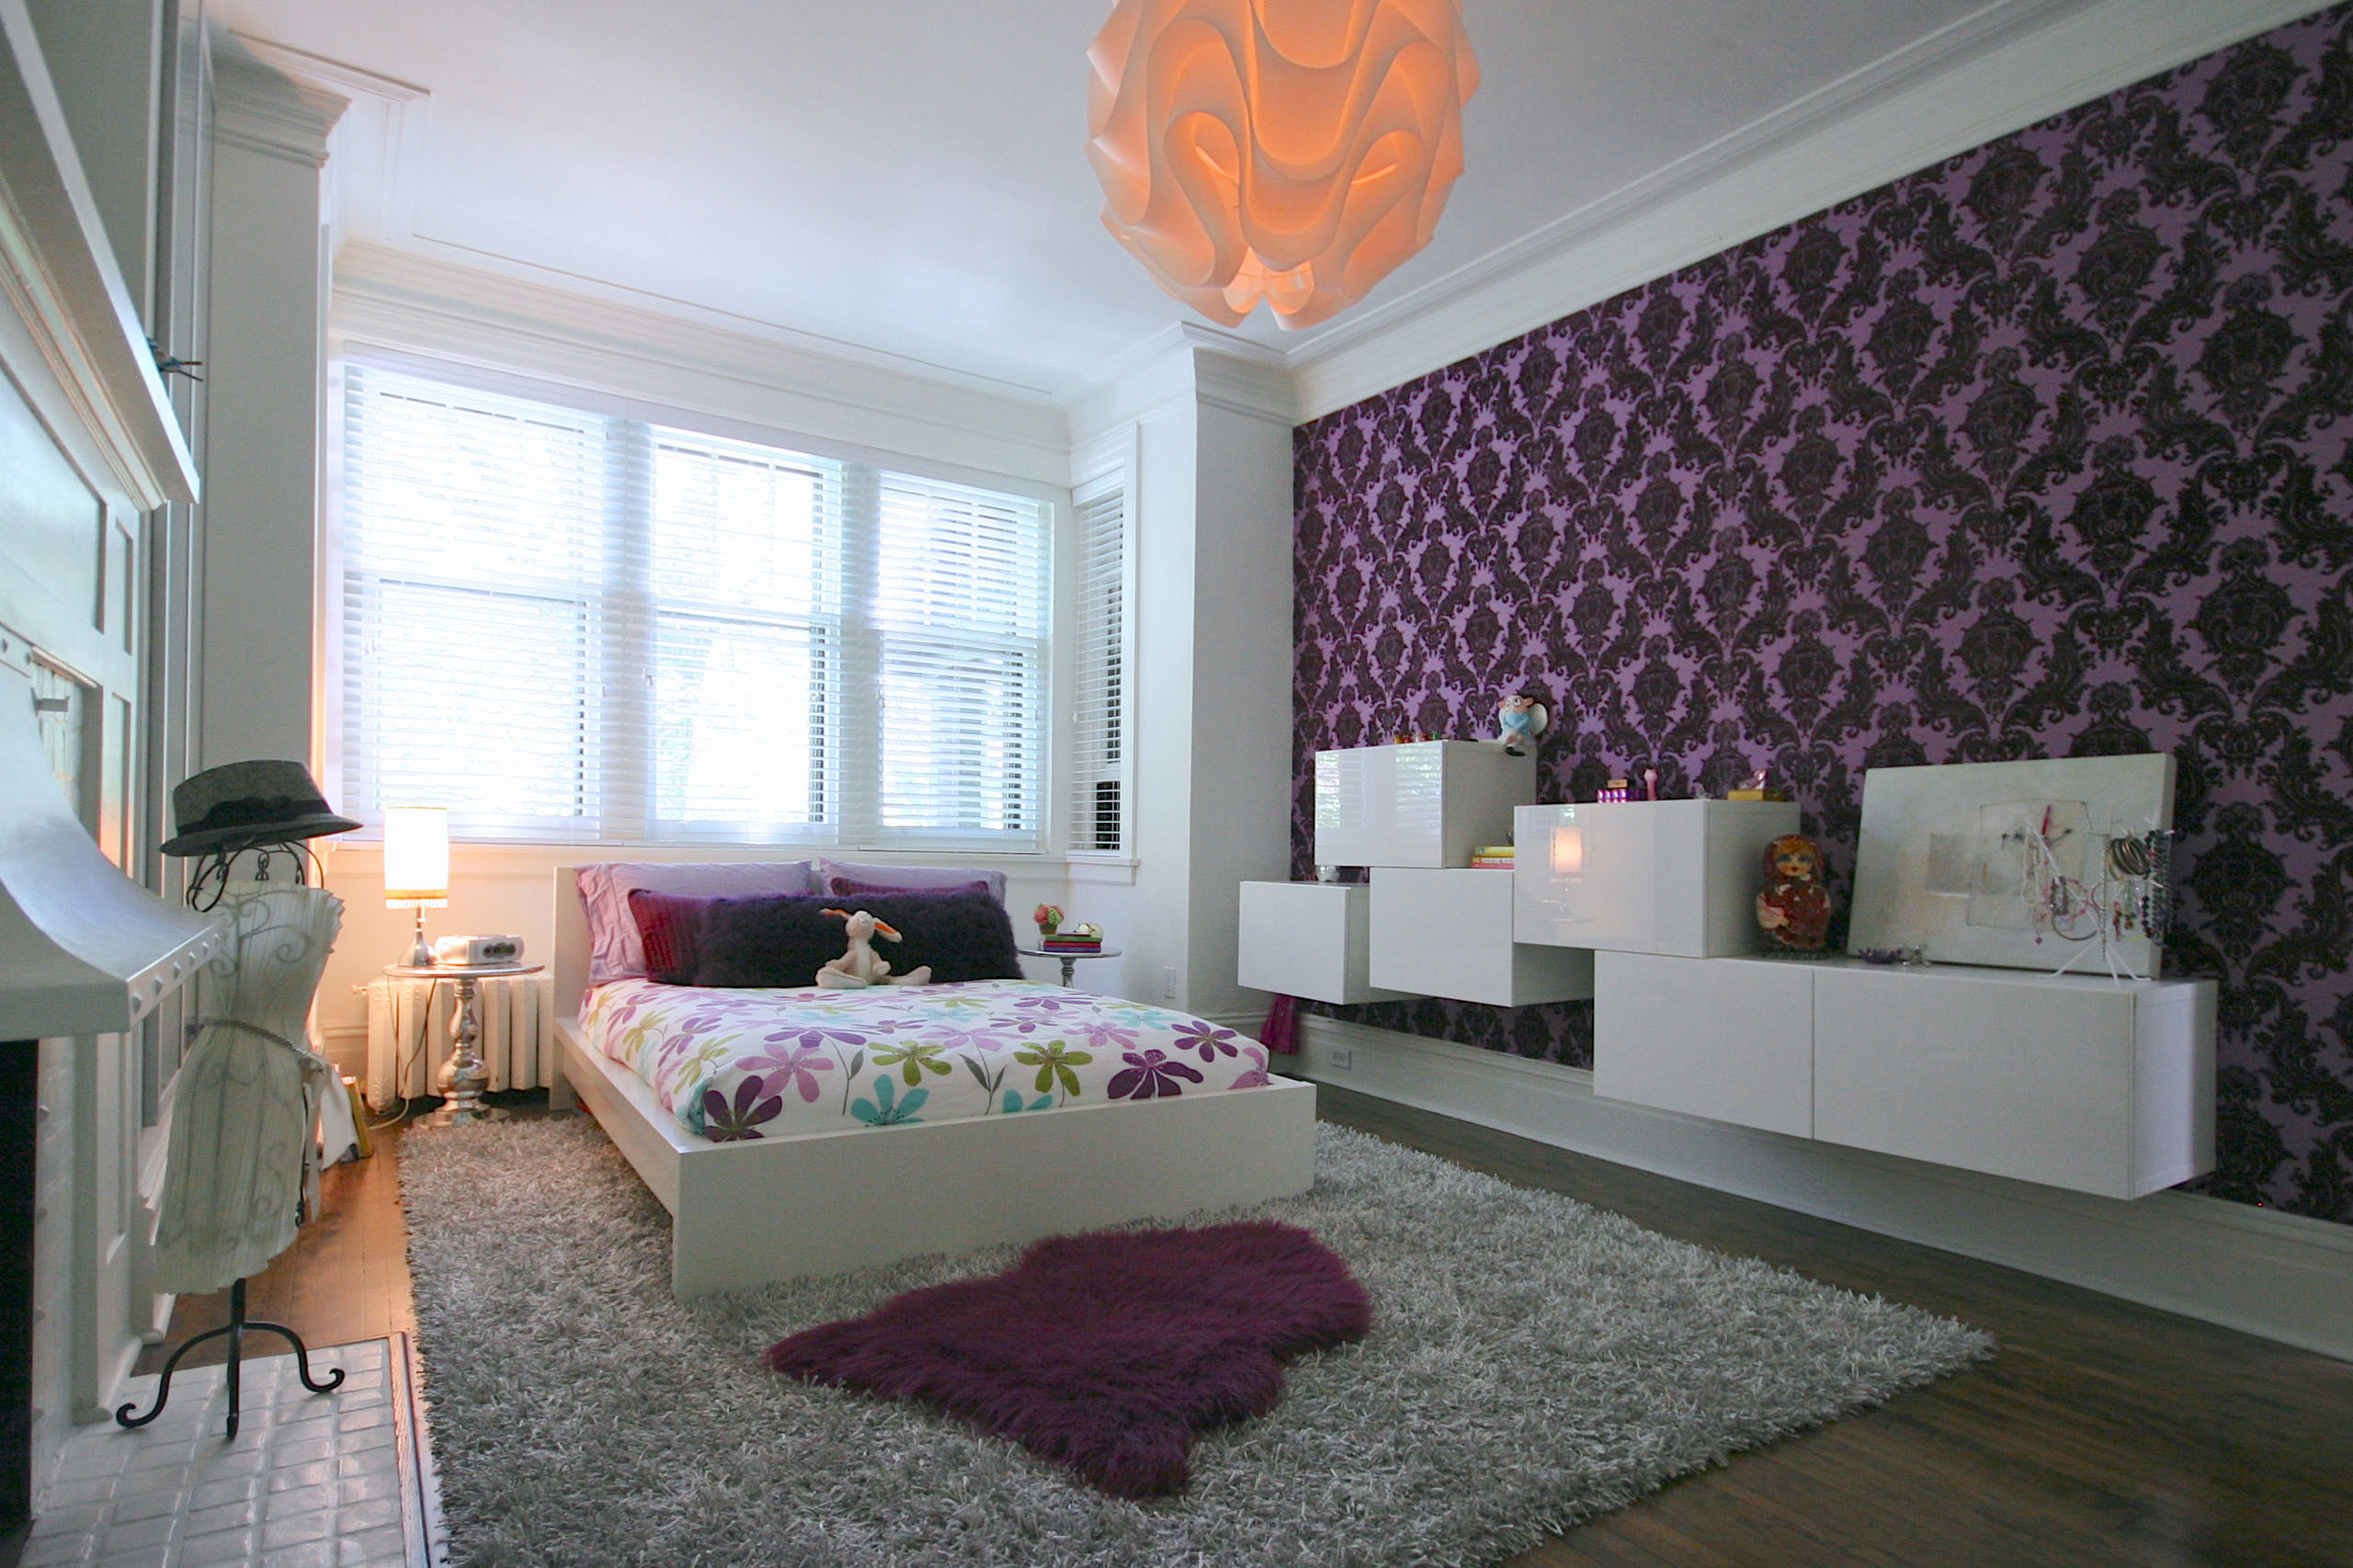 Cool Teen Bedrooms For Your Home Ideas - Bedroom Accent Wall Design Ideas - HD Wallpaper